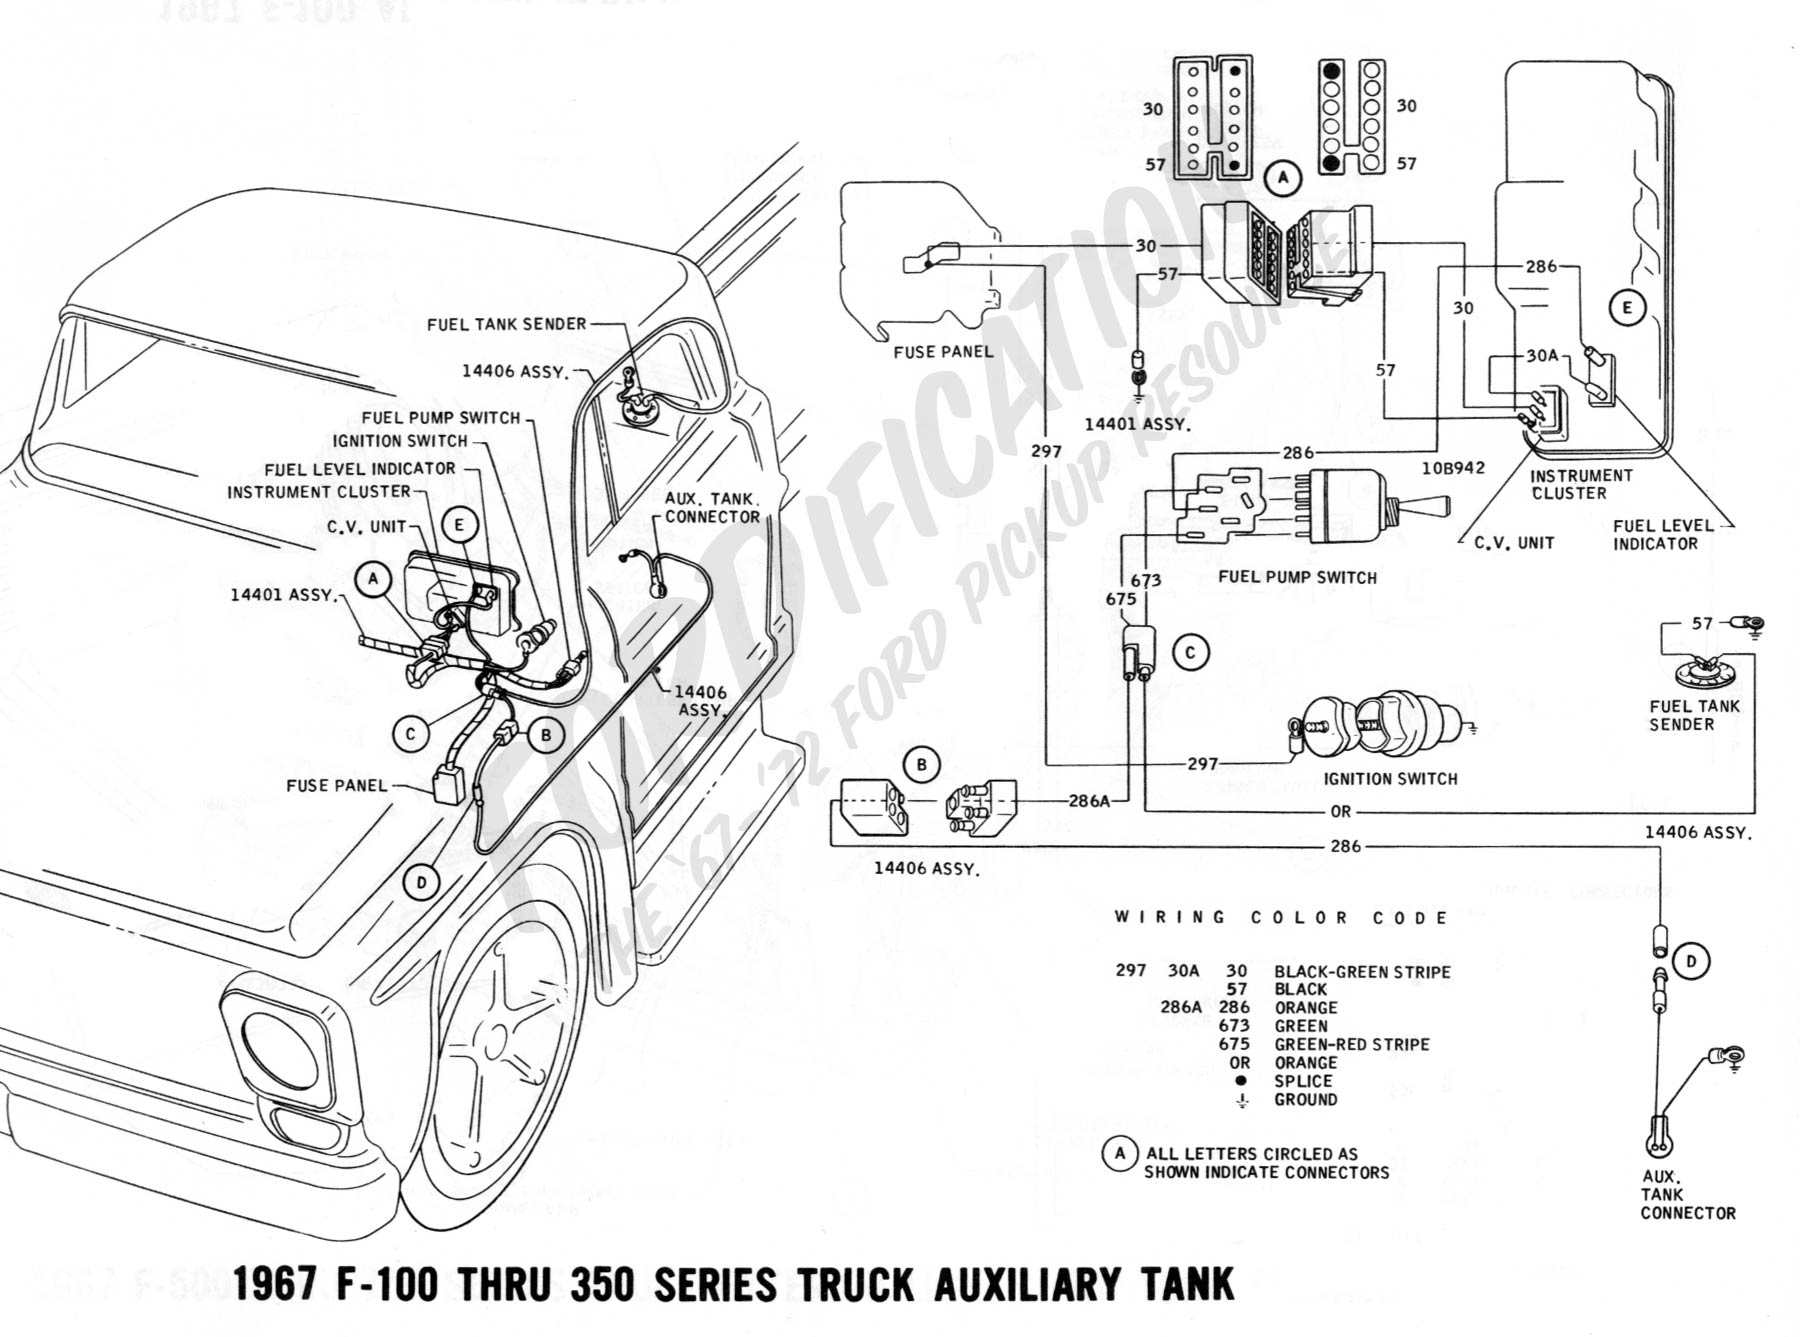 hight resolution of 1990 f150 fuel system diagram wiring diagram lyc 1990 ford fuel system diagram